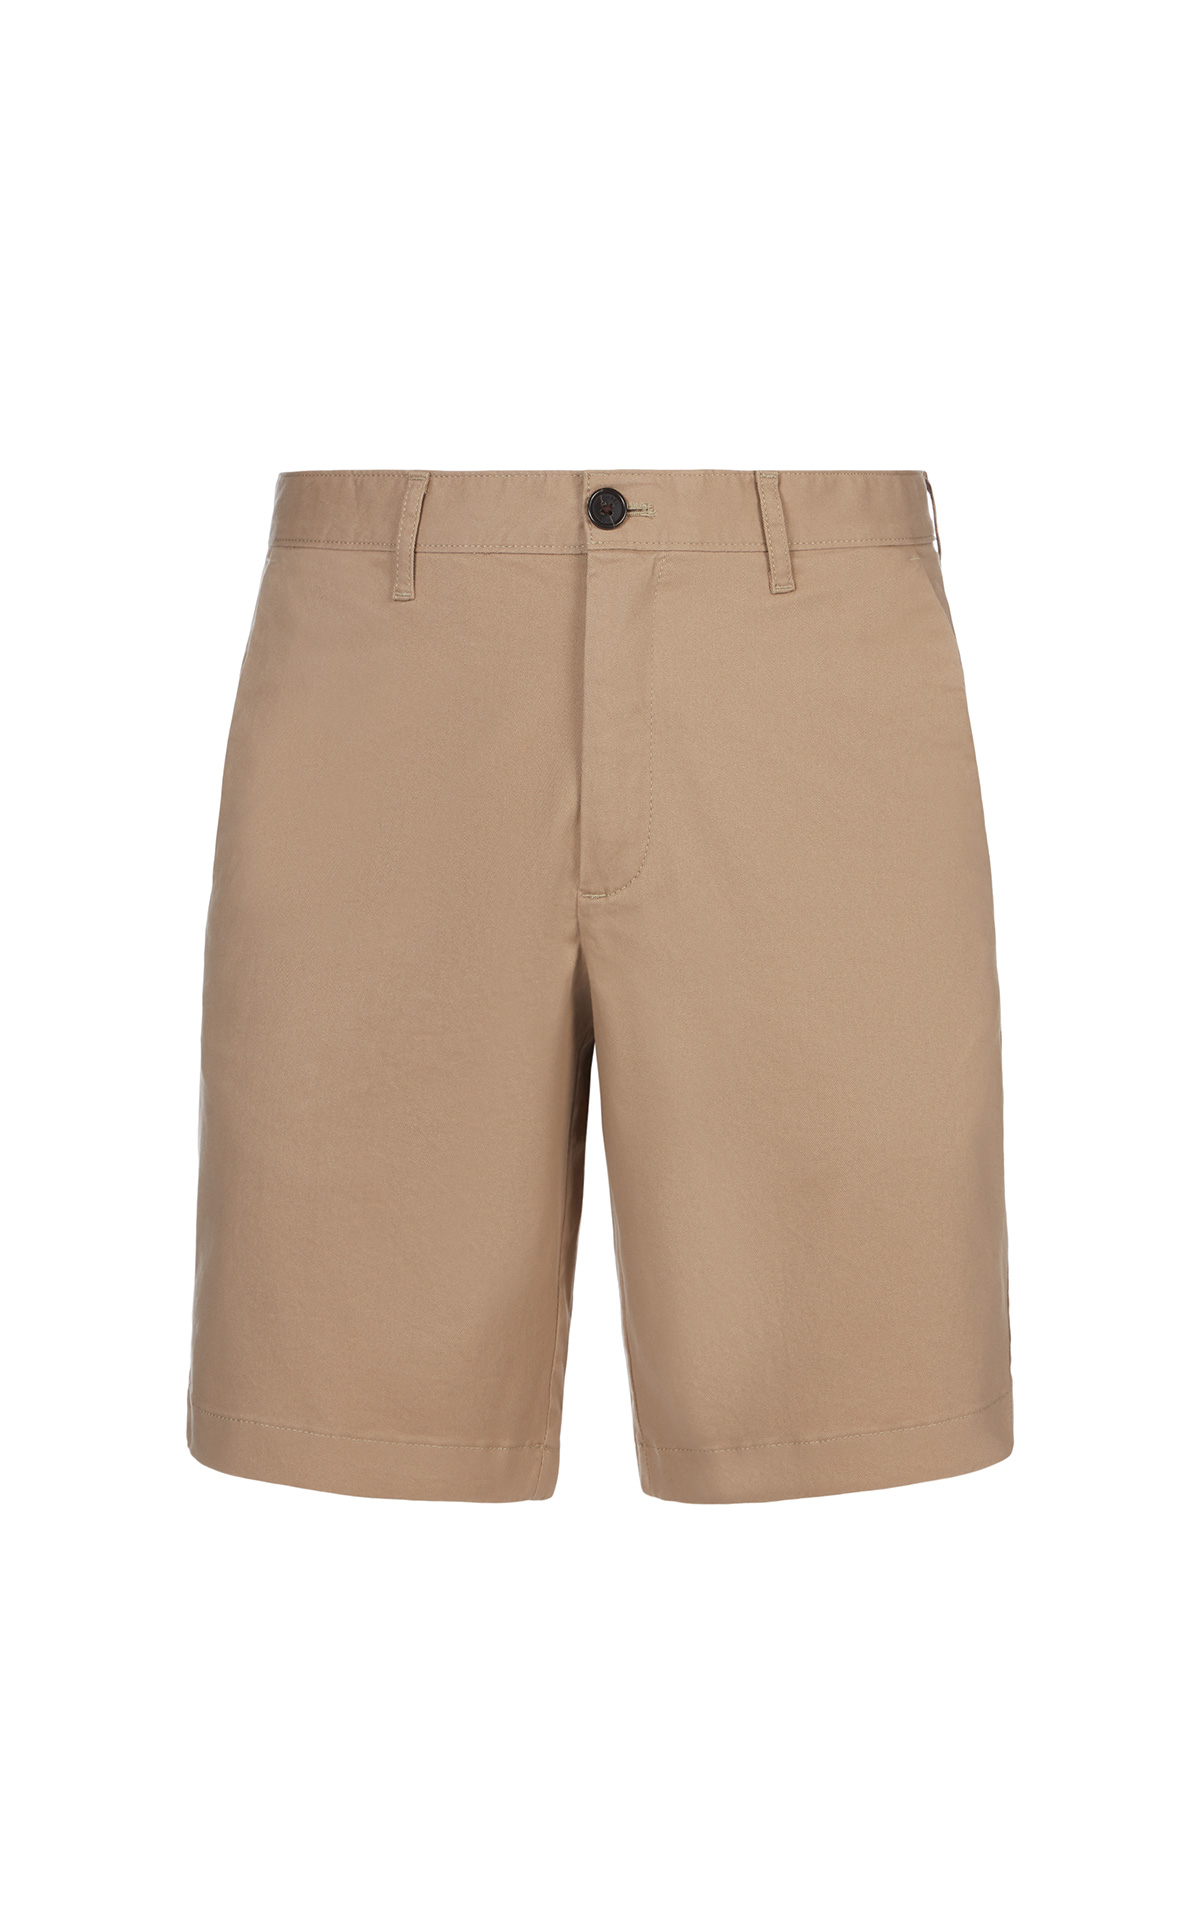 Michael Kors men's cotton short in khaki at The Bicester Village Shopping Collection